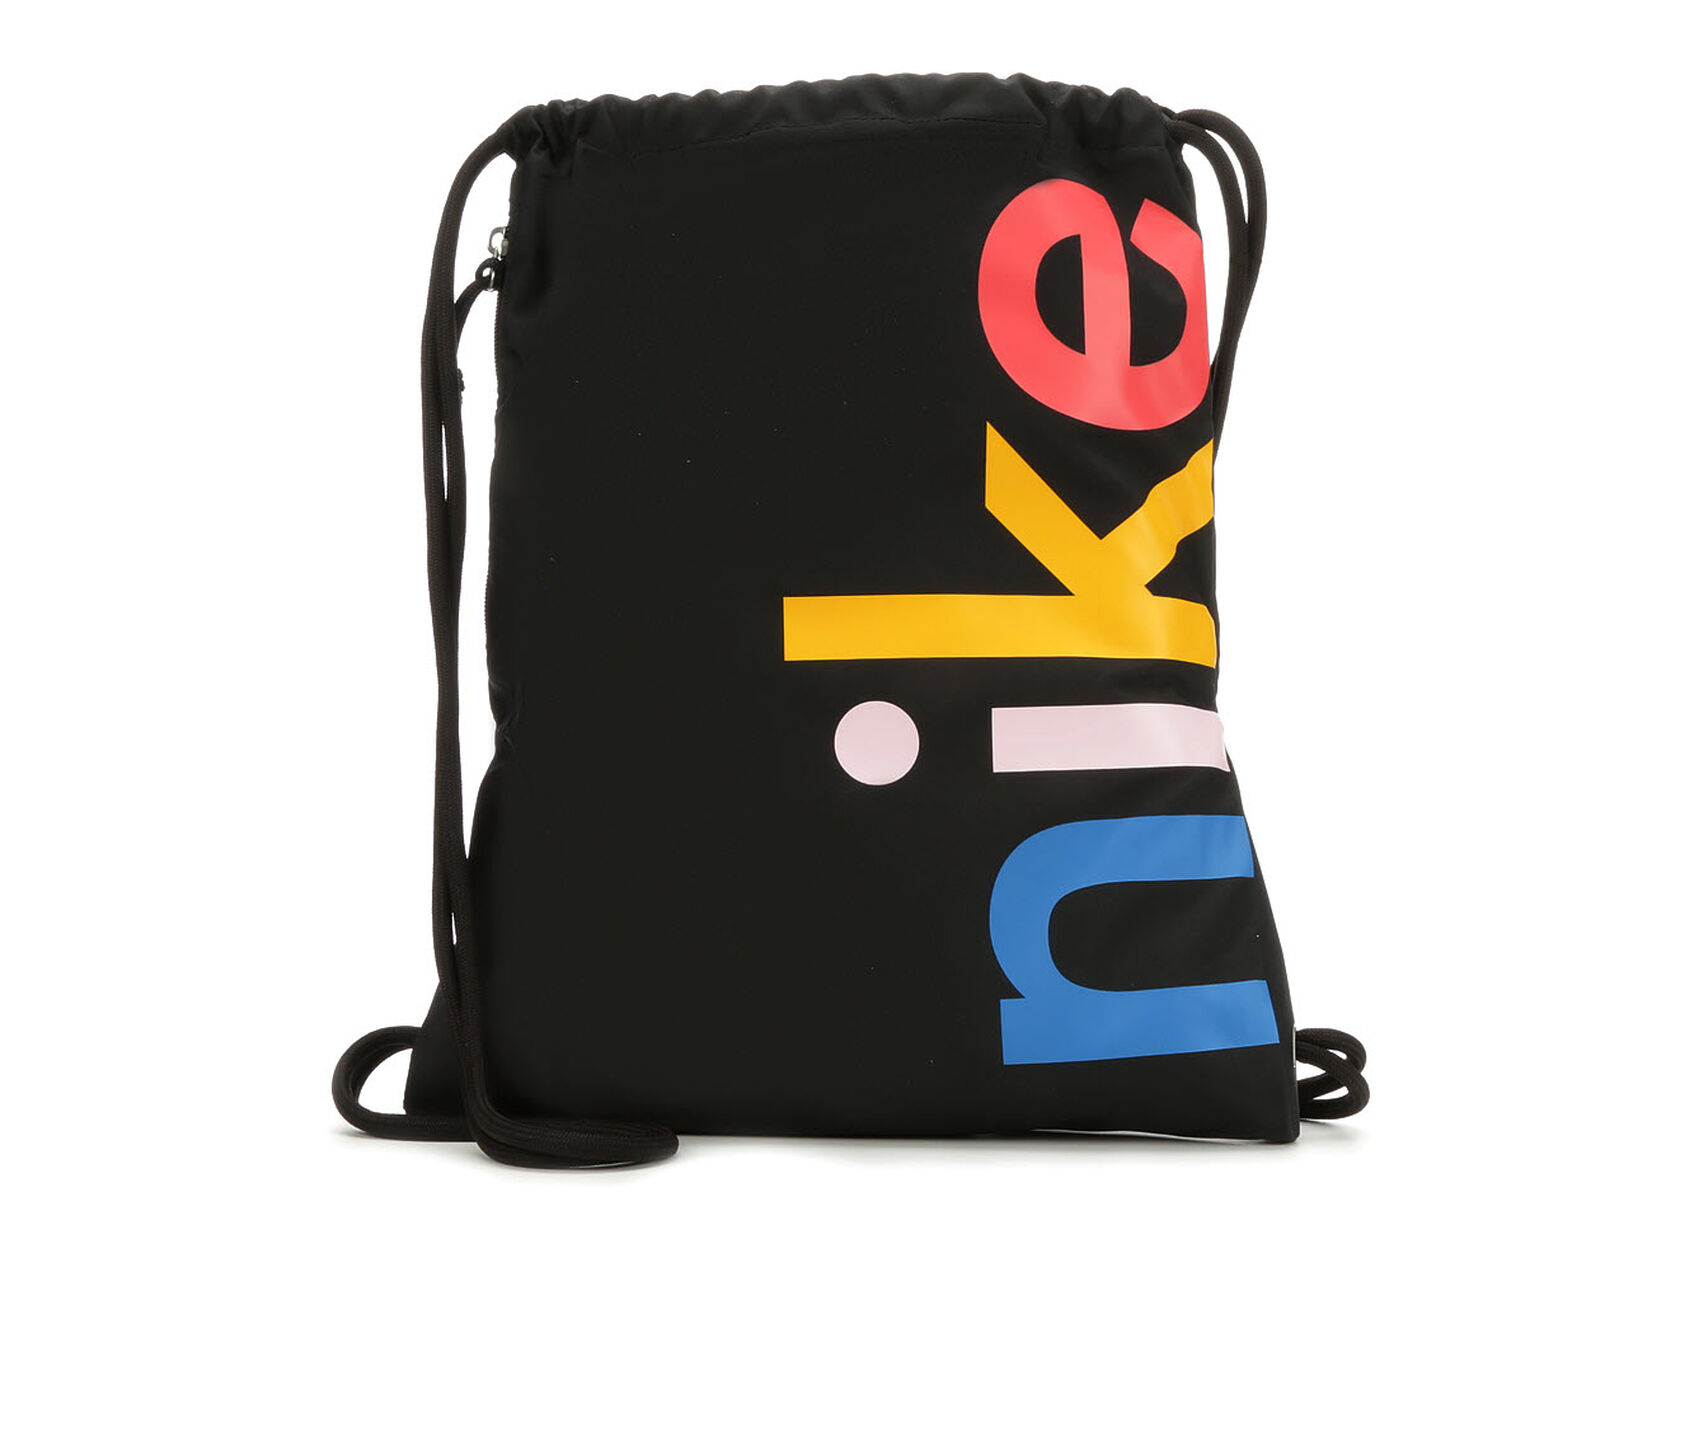 38690a1f4a Nike Heritage Gymsack. Previous